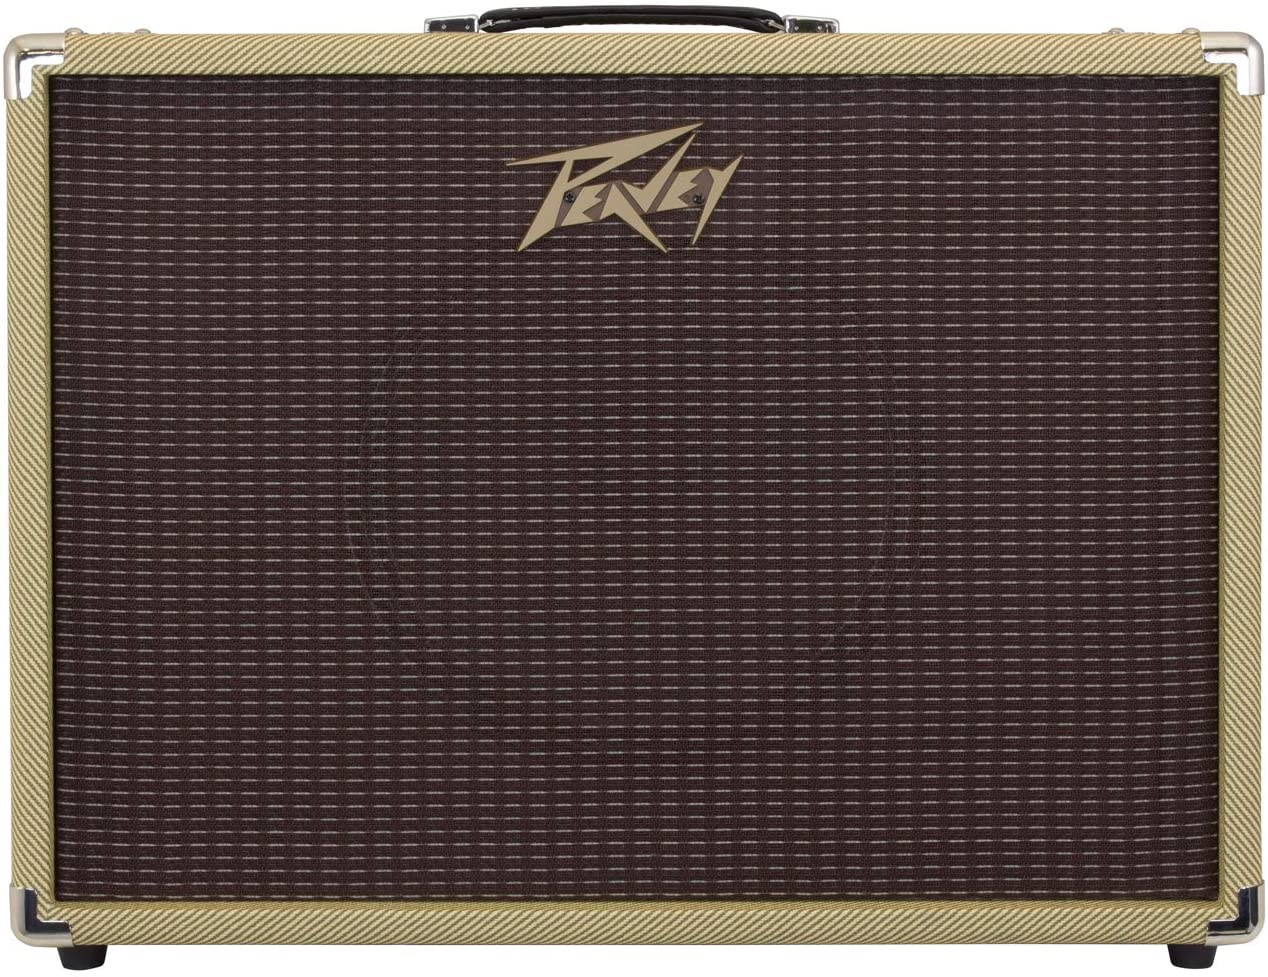 Peavey 112-C 1x12 Guitar Cabinet - Guitar Cabinets